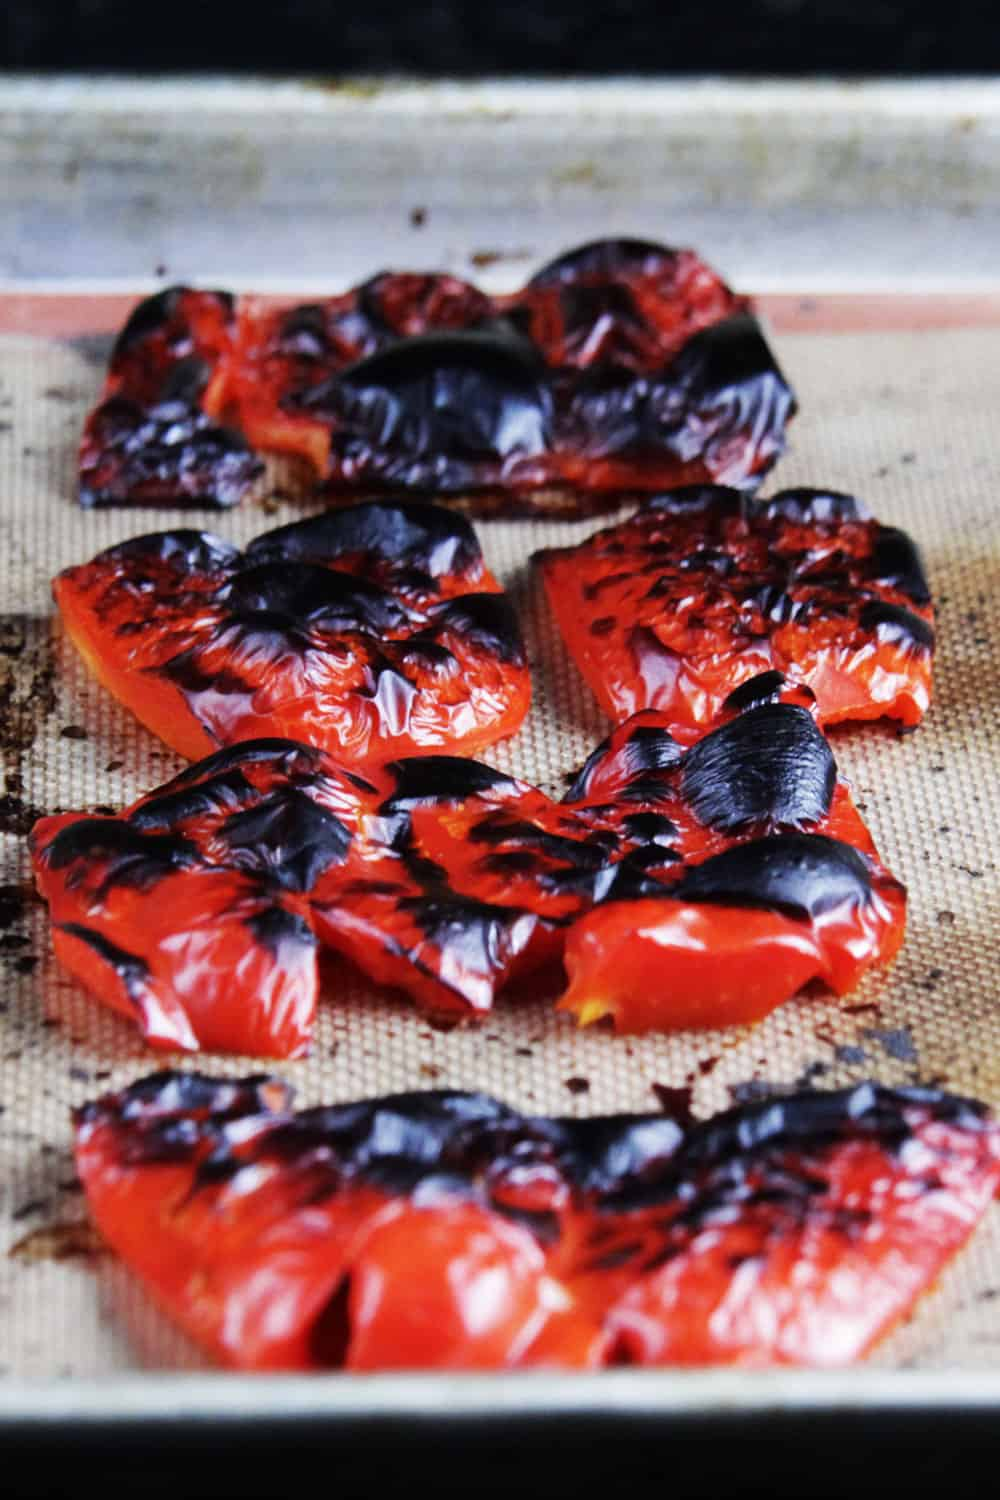 showing how to make Roasted Red Pepper Pasta by roasting red peppers